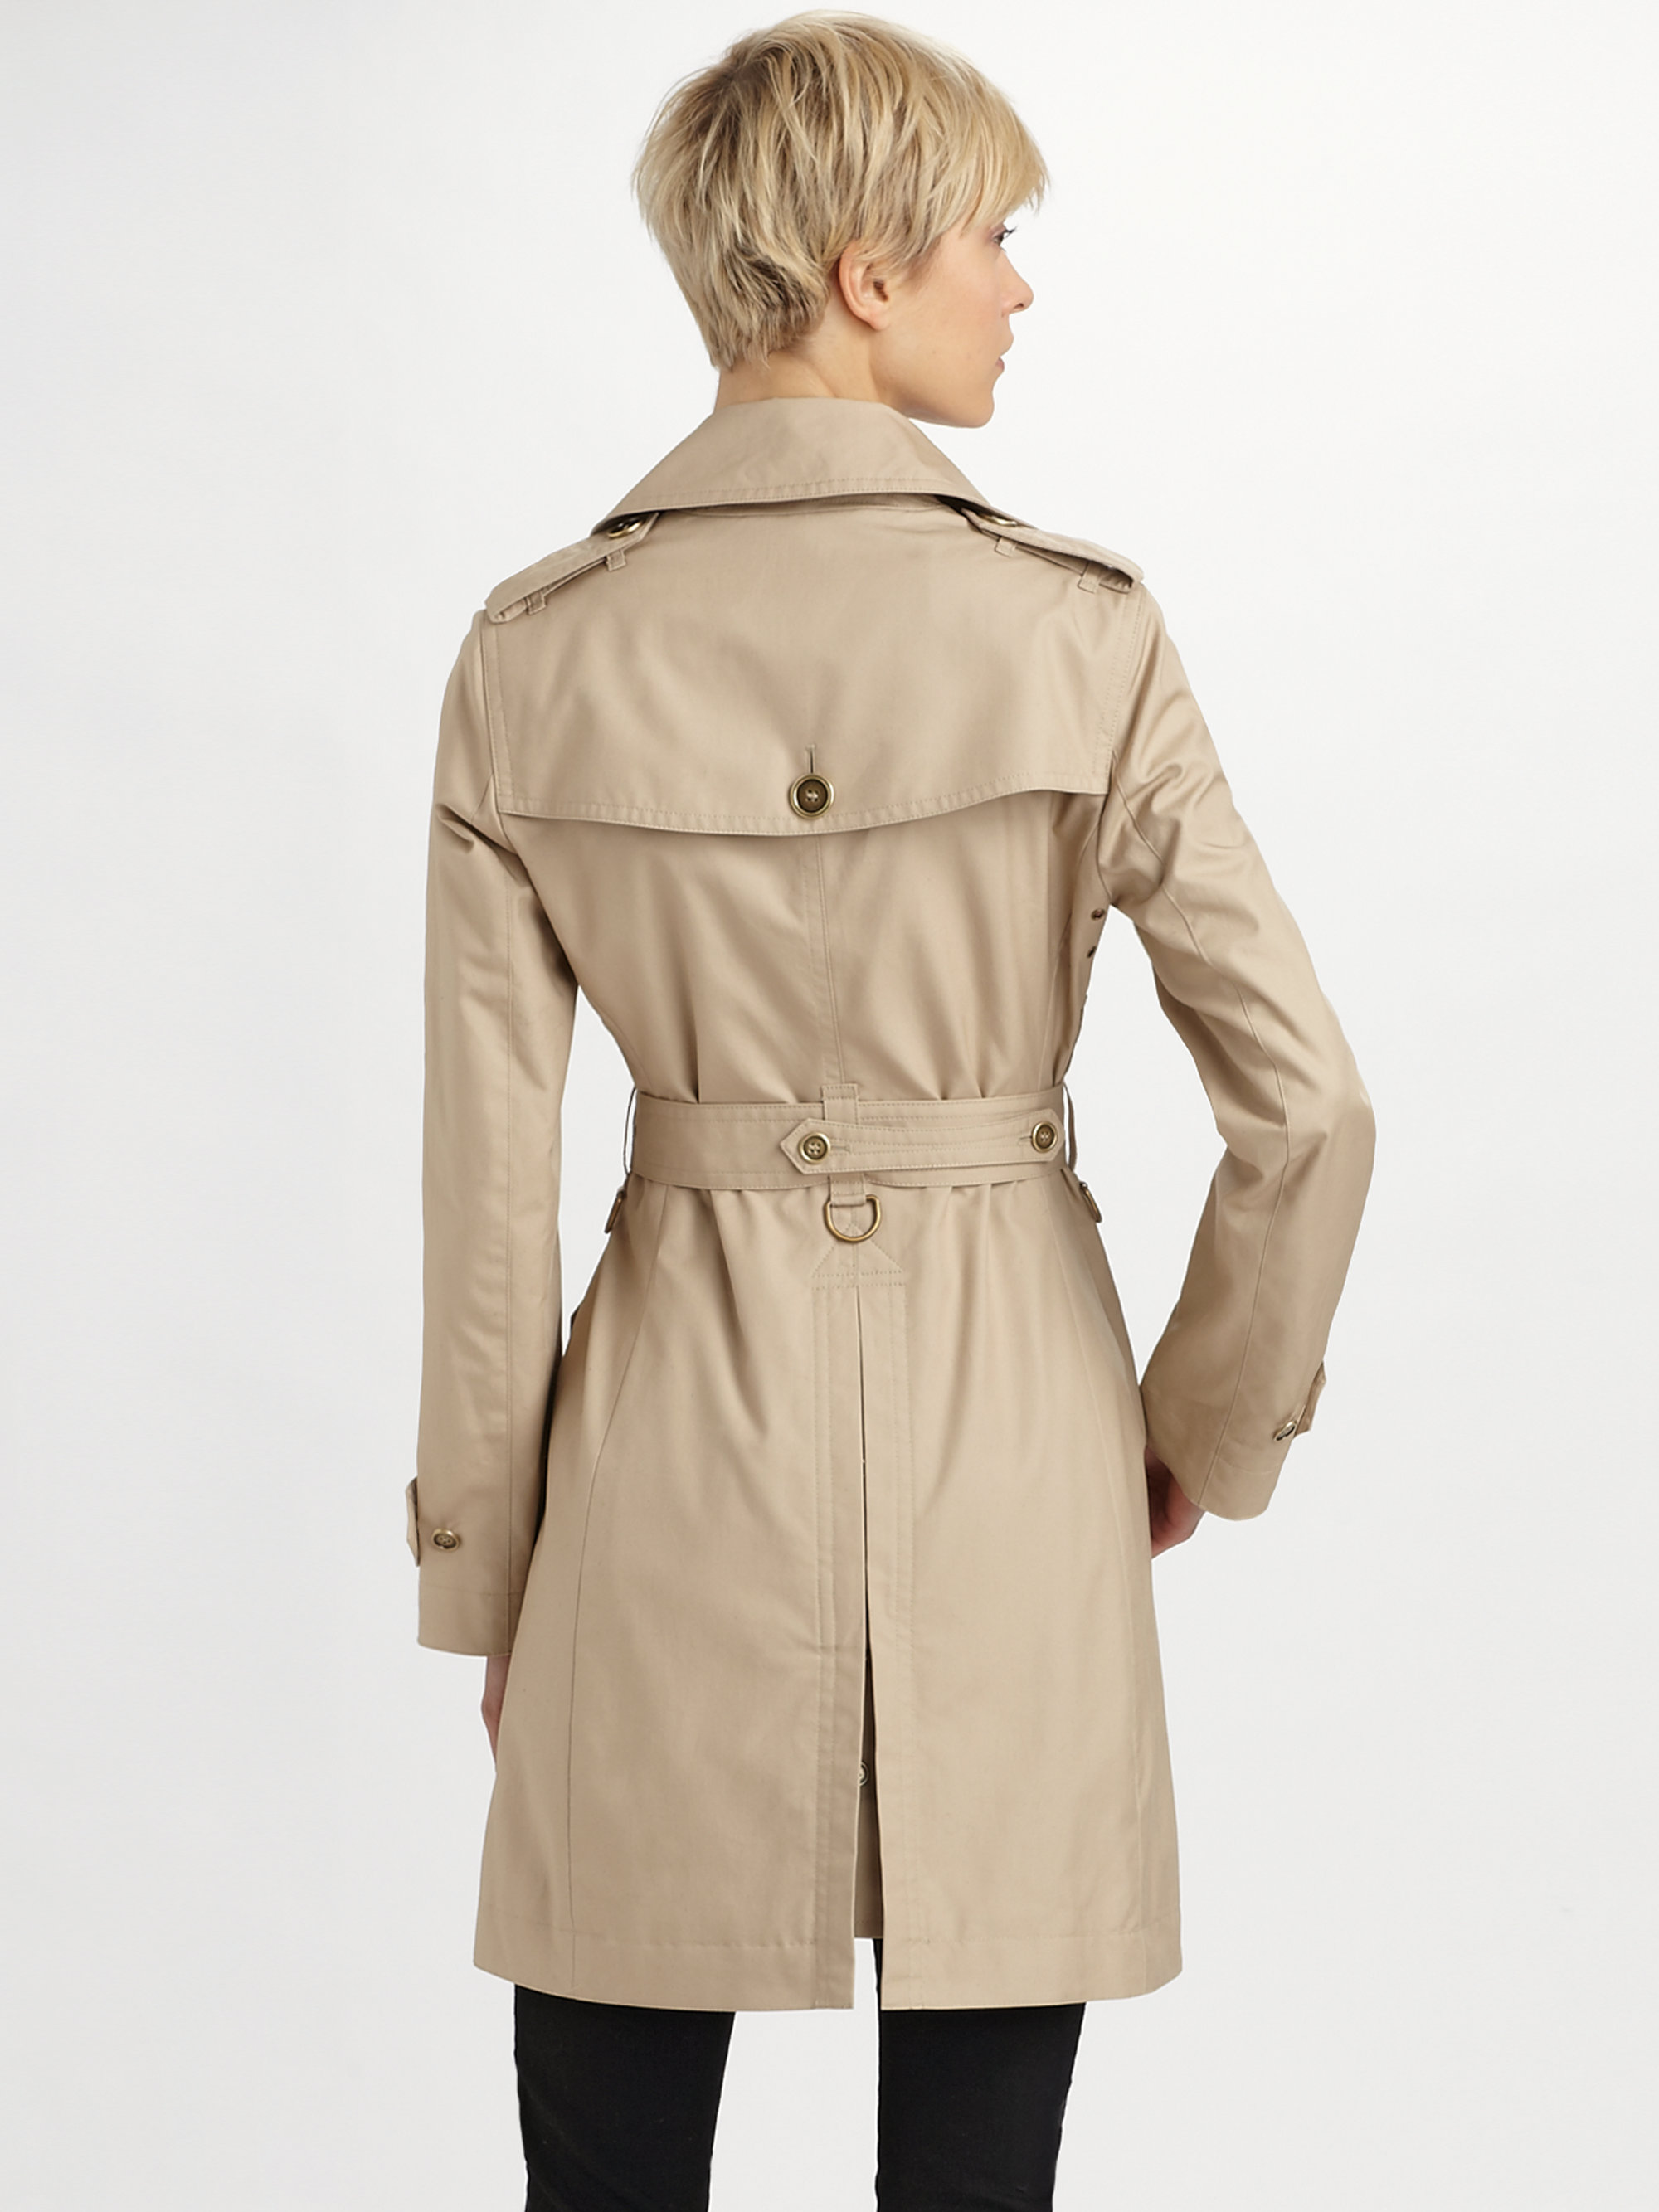 lyst burberry brit double breasted trench coat in natural. Black Bedroom Furniture Sets. Home Design Ideas